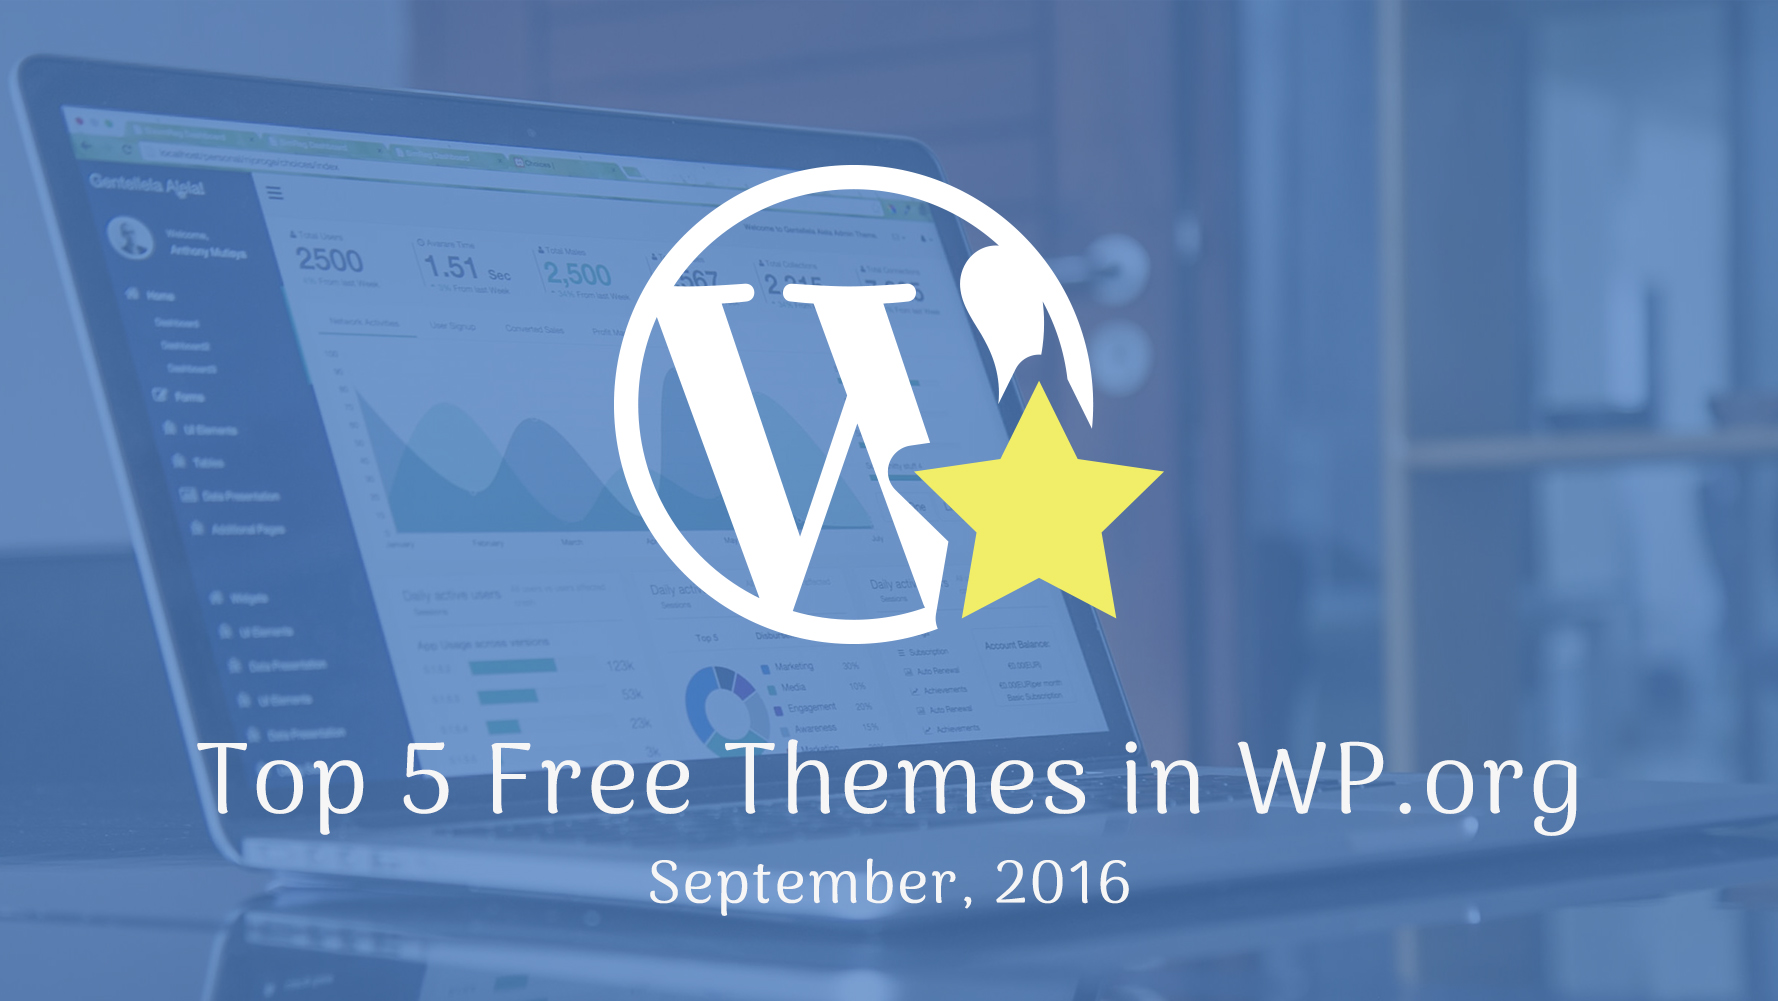 Top 5 Free Themes in WordPress.org – September 2016